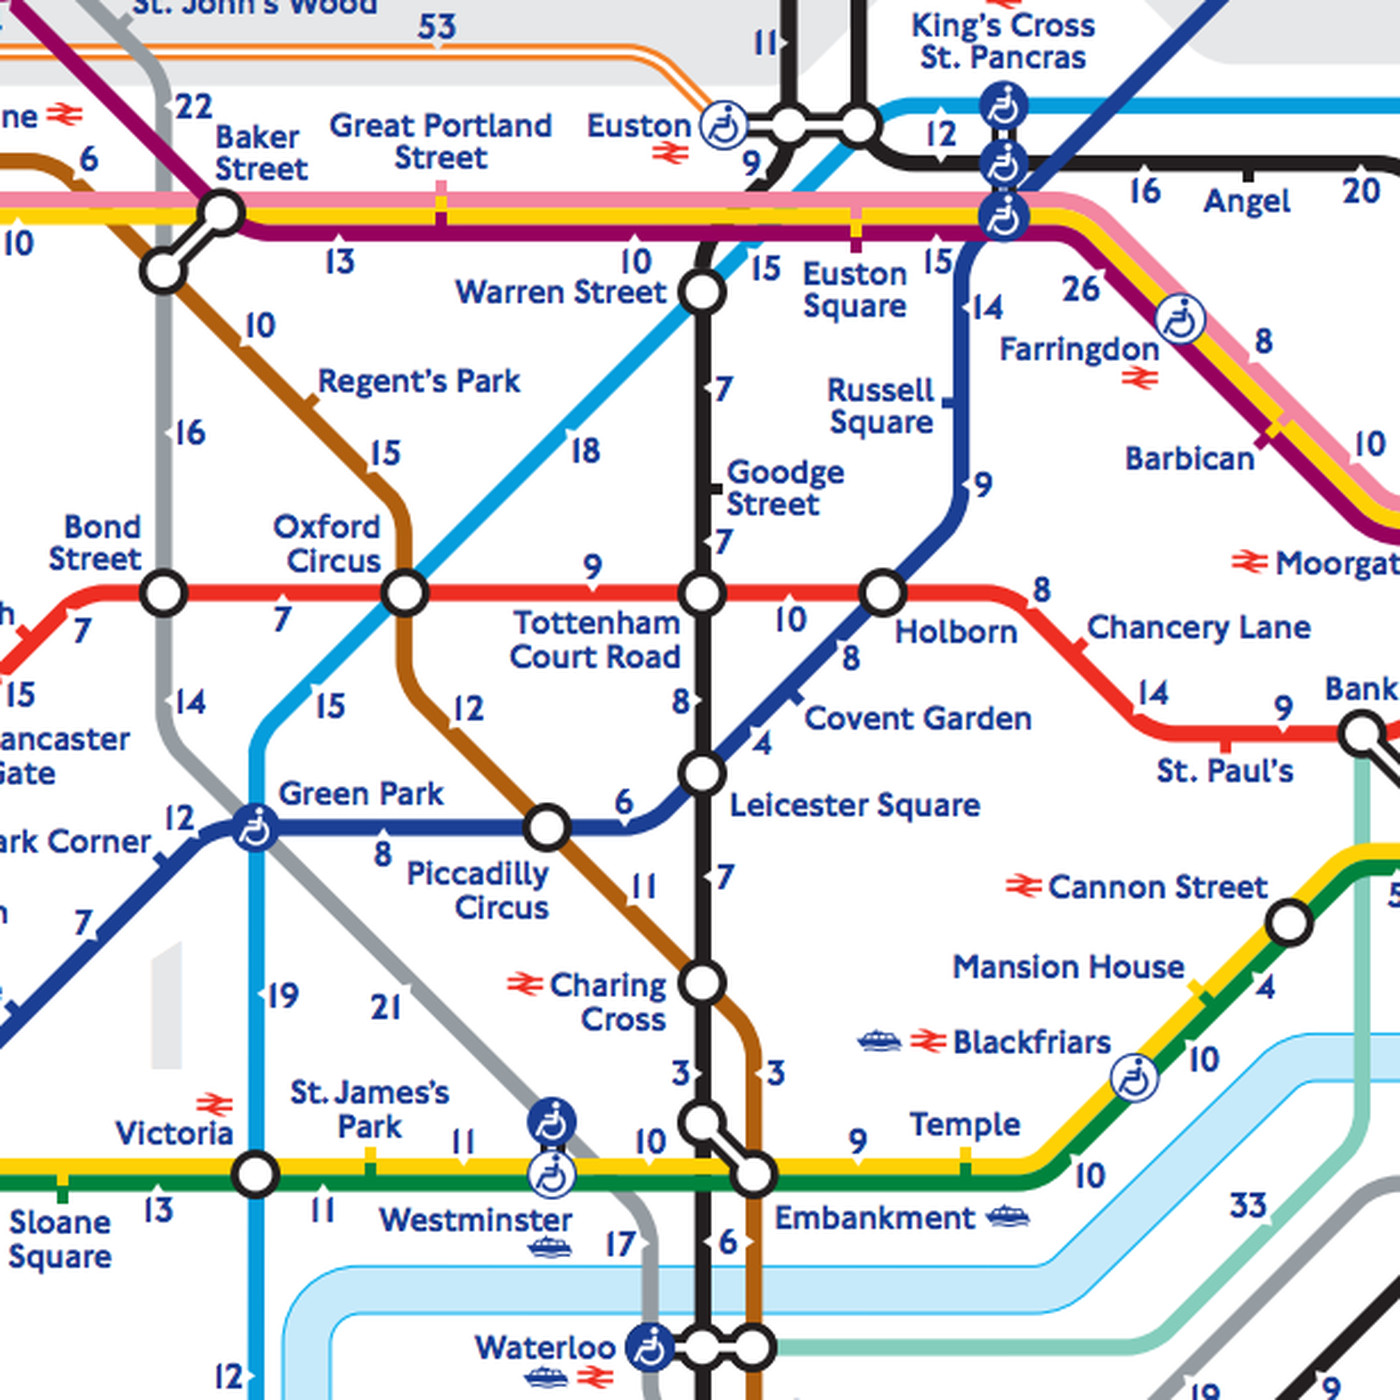 London's 'walk the Tube' map reveals the real distance between ... on london building map, london train map, trafffic charge london map, london rex, london fallen angel, london monitor, london zone 1, london tube passes for tourists, london home map, london congestion charge map, london cambridge map, london bus map, london red map, london metro map, london travel zones, london sky pool, london map tourist, london global map, london postcode map, london points of interest,